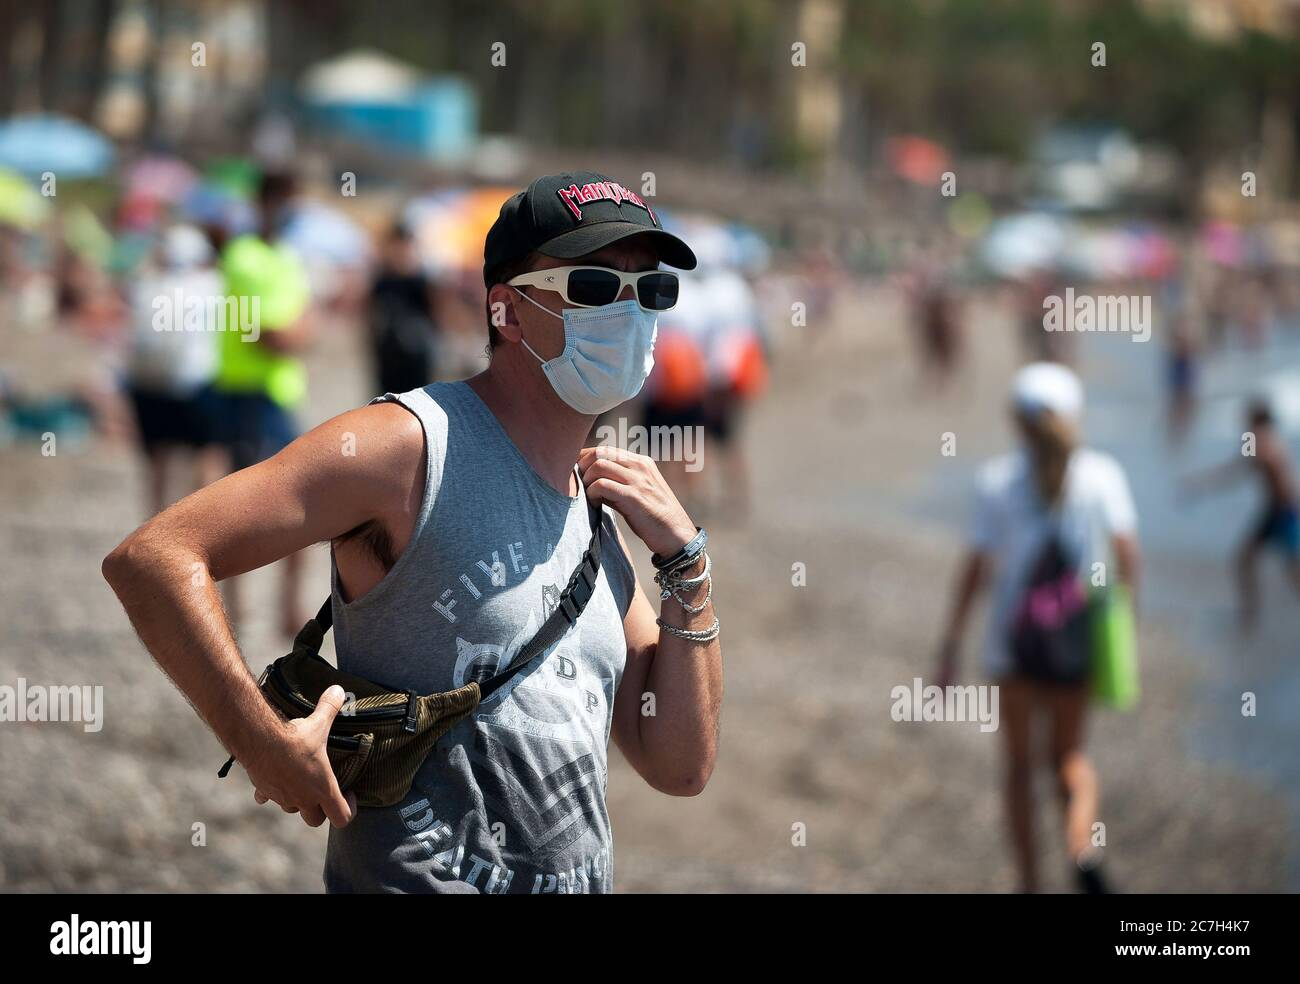 Malaga, Spain. 17th July, 2020. A man wearing a face mask is seen at La Malagueta beach amid coronavirus crisis.The appearance of new coronavirus (COVID-19) outbreak in Spain after easing of restrictions has caused the regional government to impose the obligatory use of face masks in outdoors places even when they observe a safe distance between people. This measure tries to curb the spread of coronavirus pandemic. Credit: SOPA Images Limited/Alamy Live News Stock Photo